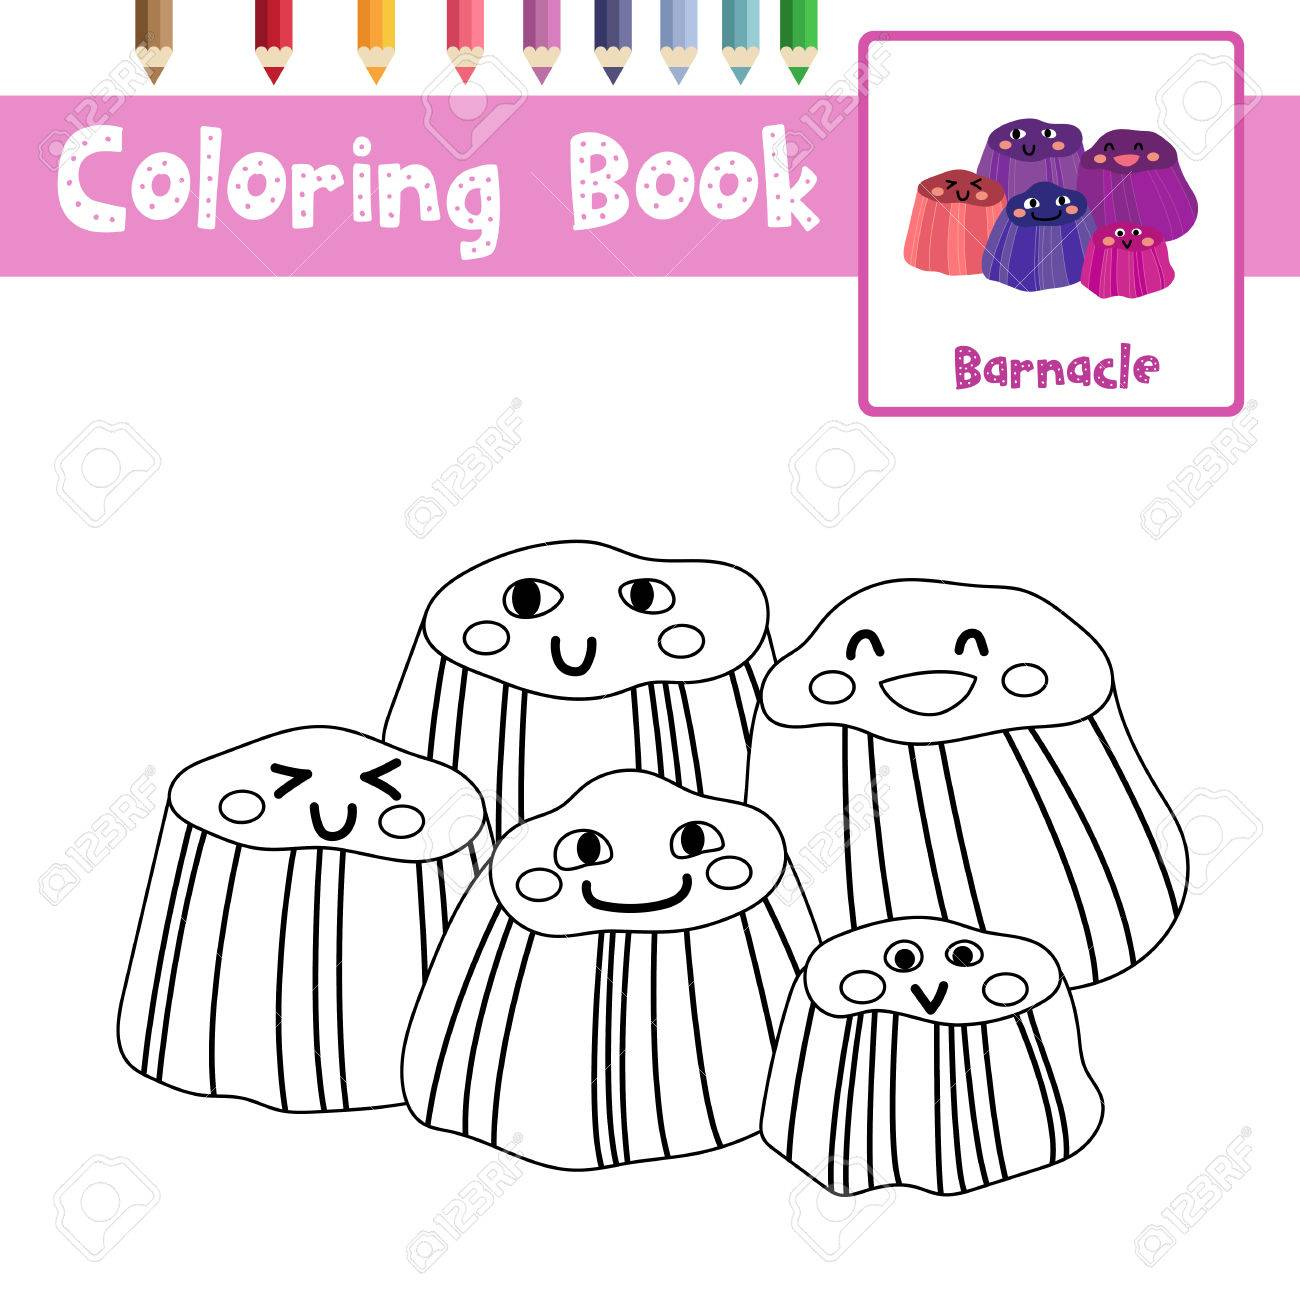 Coloring Page Of Barnacles Animals For Preschool Kids Activity Educational  Worksheet. Vector Illustration. Stock